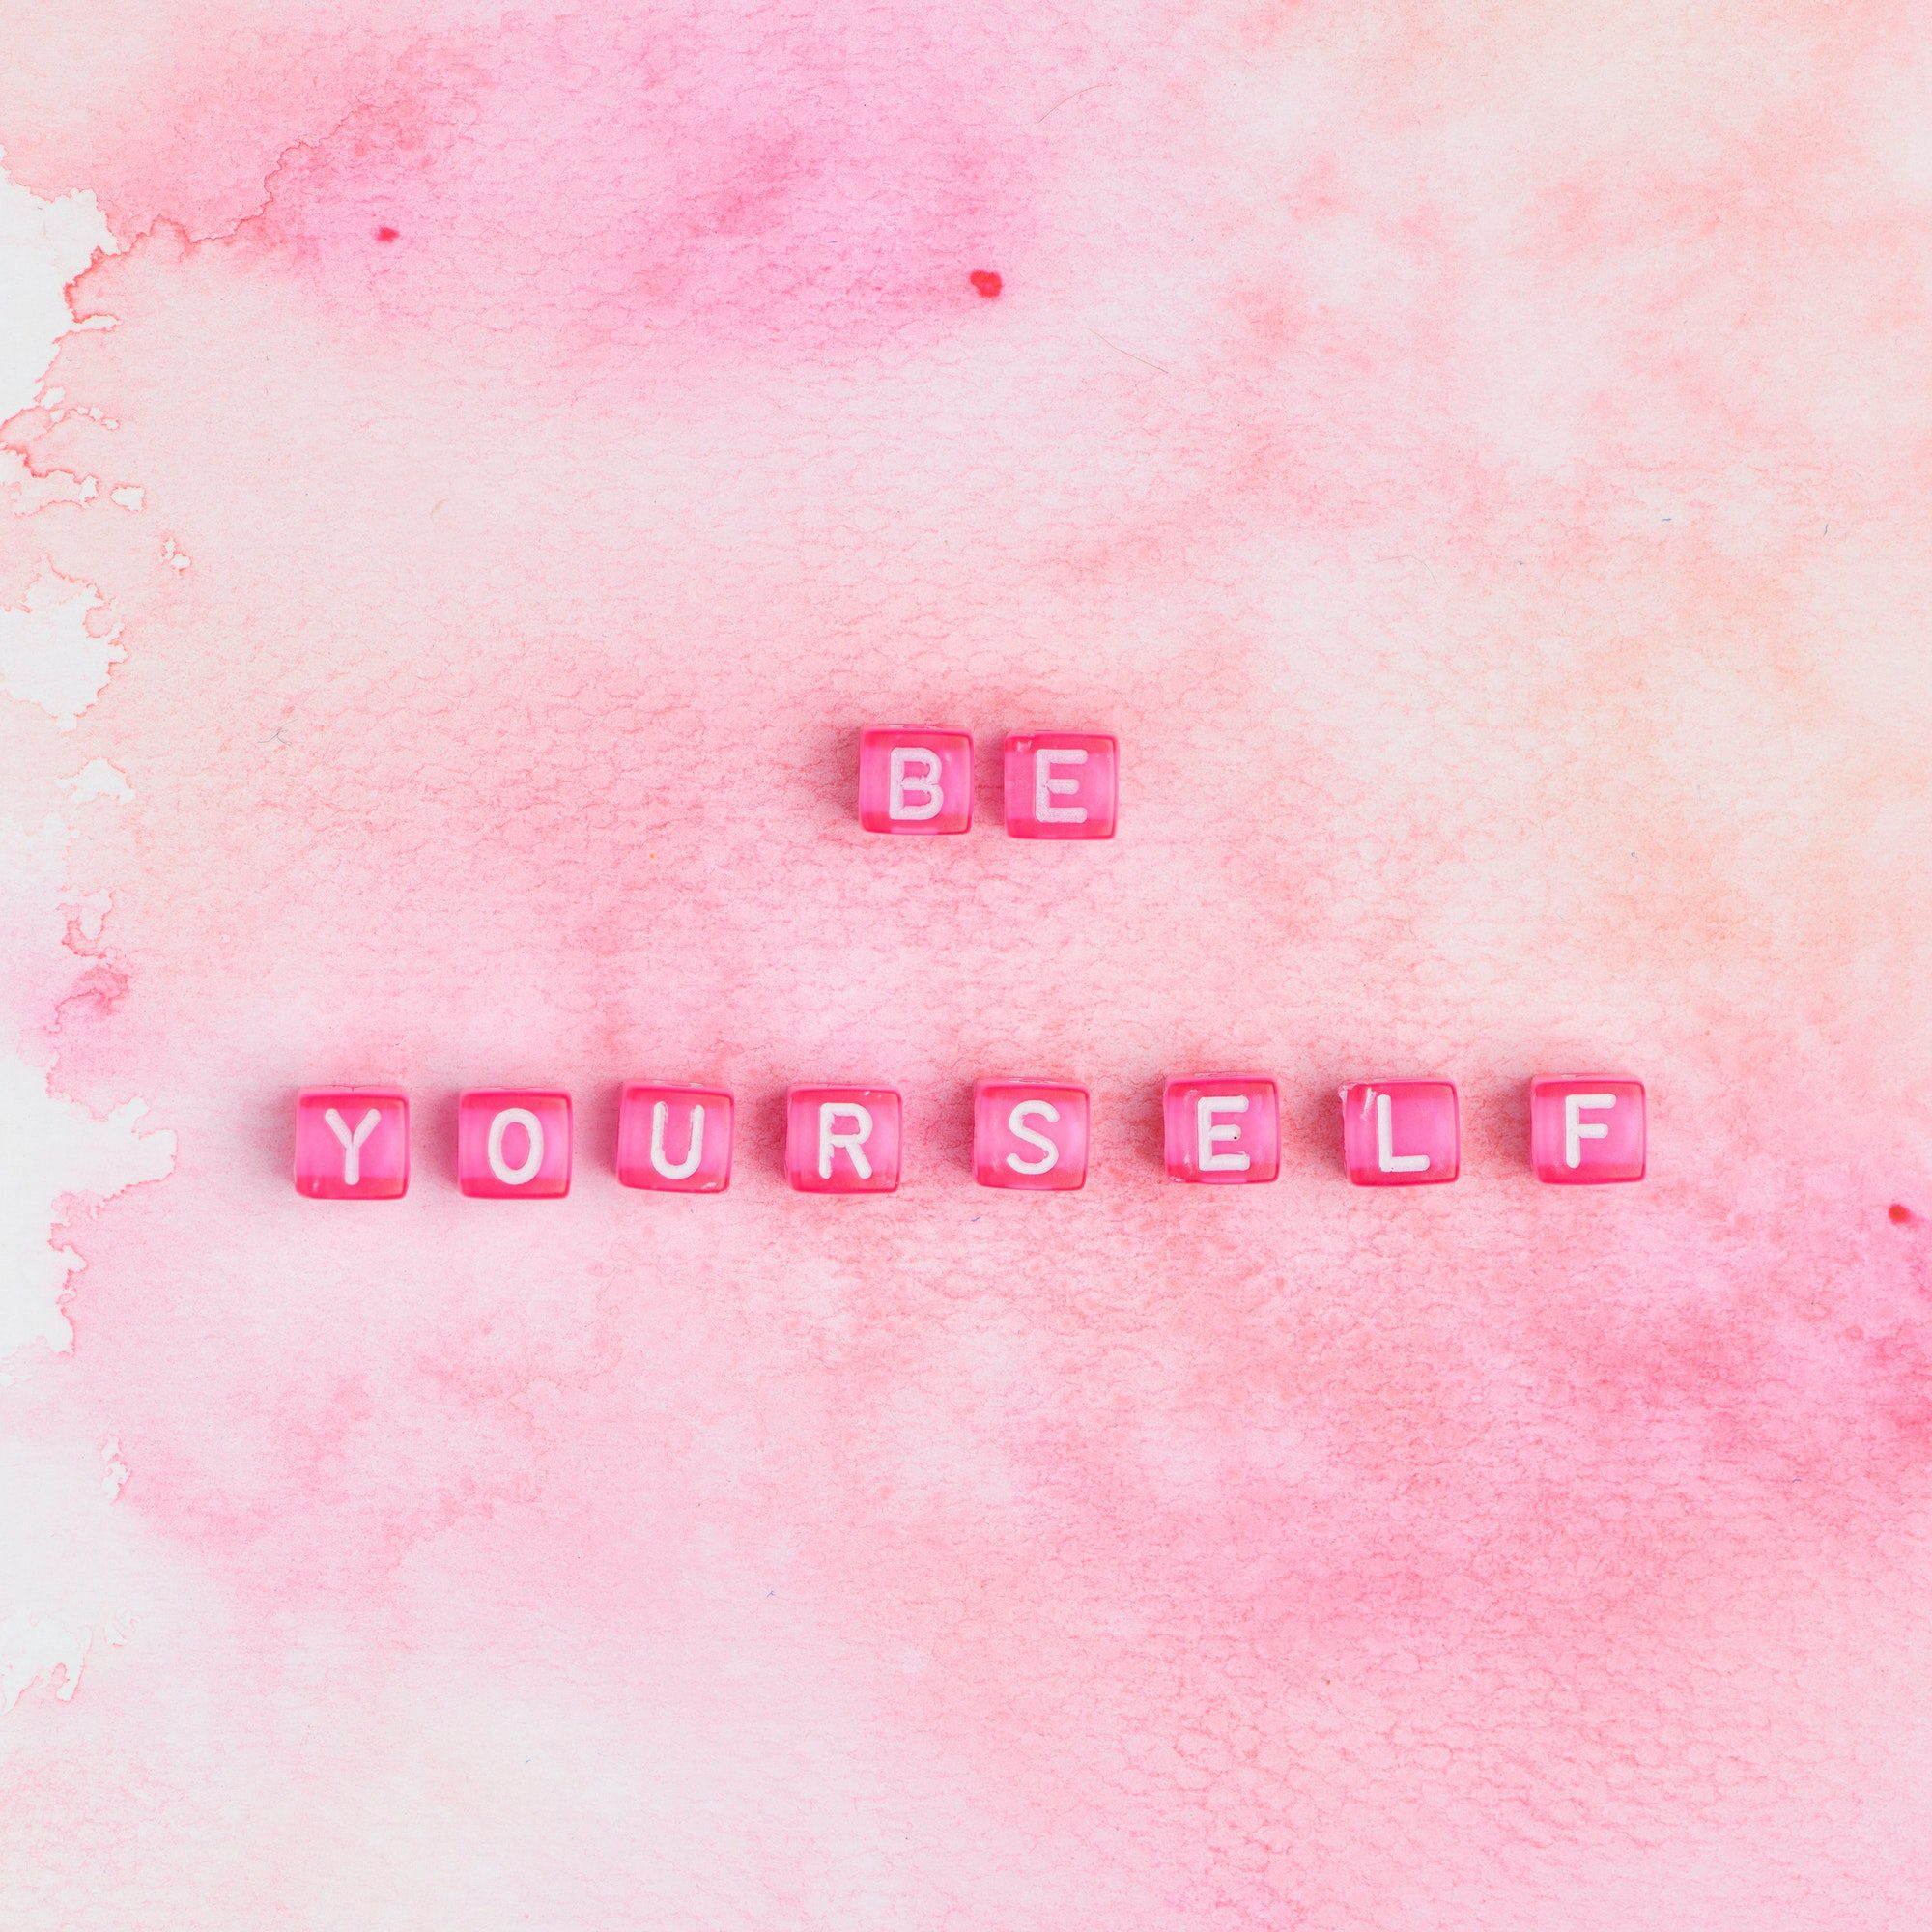 BE YOURSELF beads text typography on pink